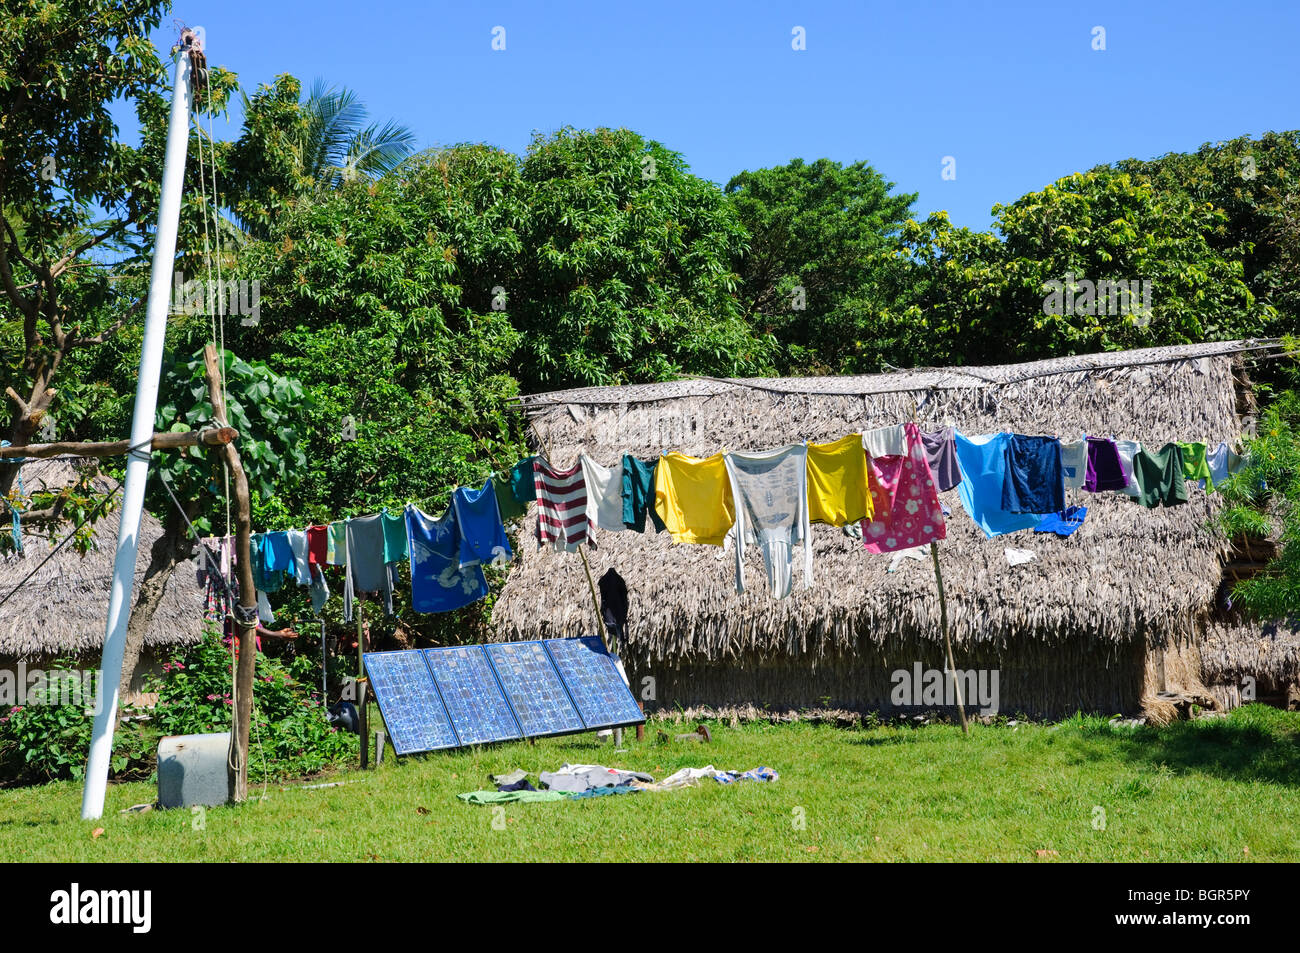 Solar panels power a village in Vanuatu, South Pacific. - Stock Image